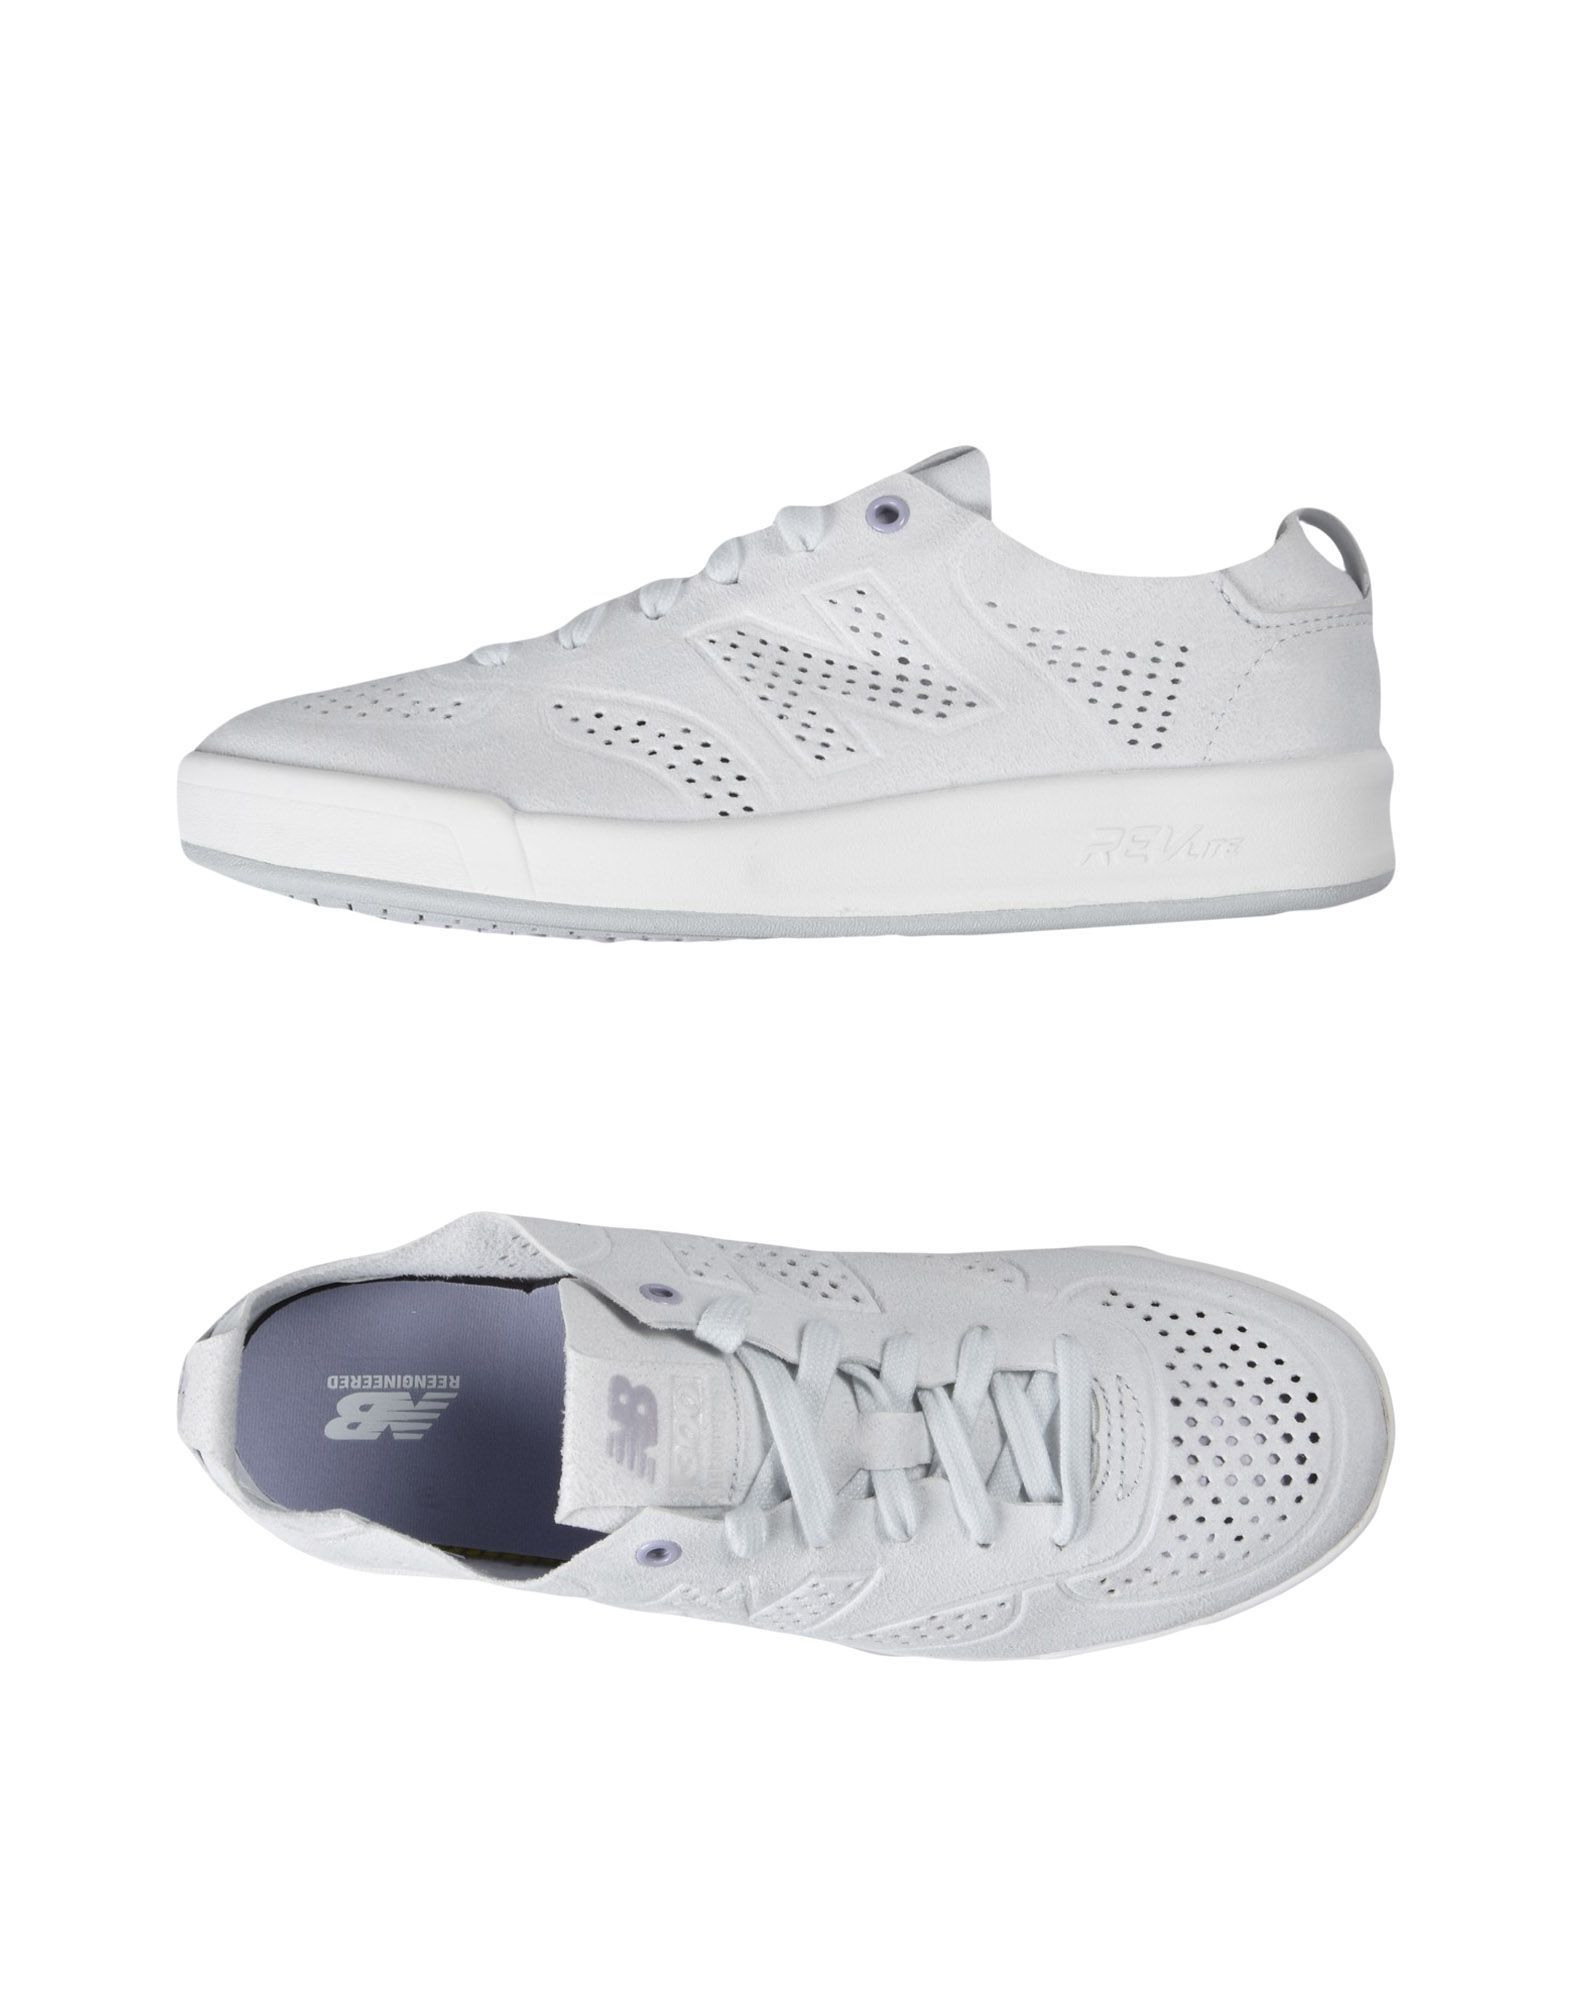 Sneakers New Balance 300 Deconstructed - Femme - Sneakers New Balance sur